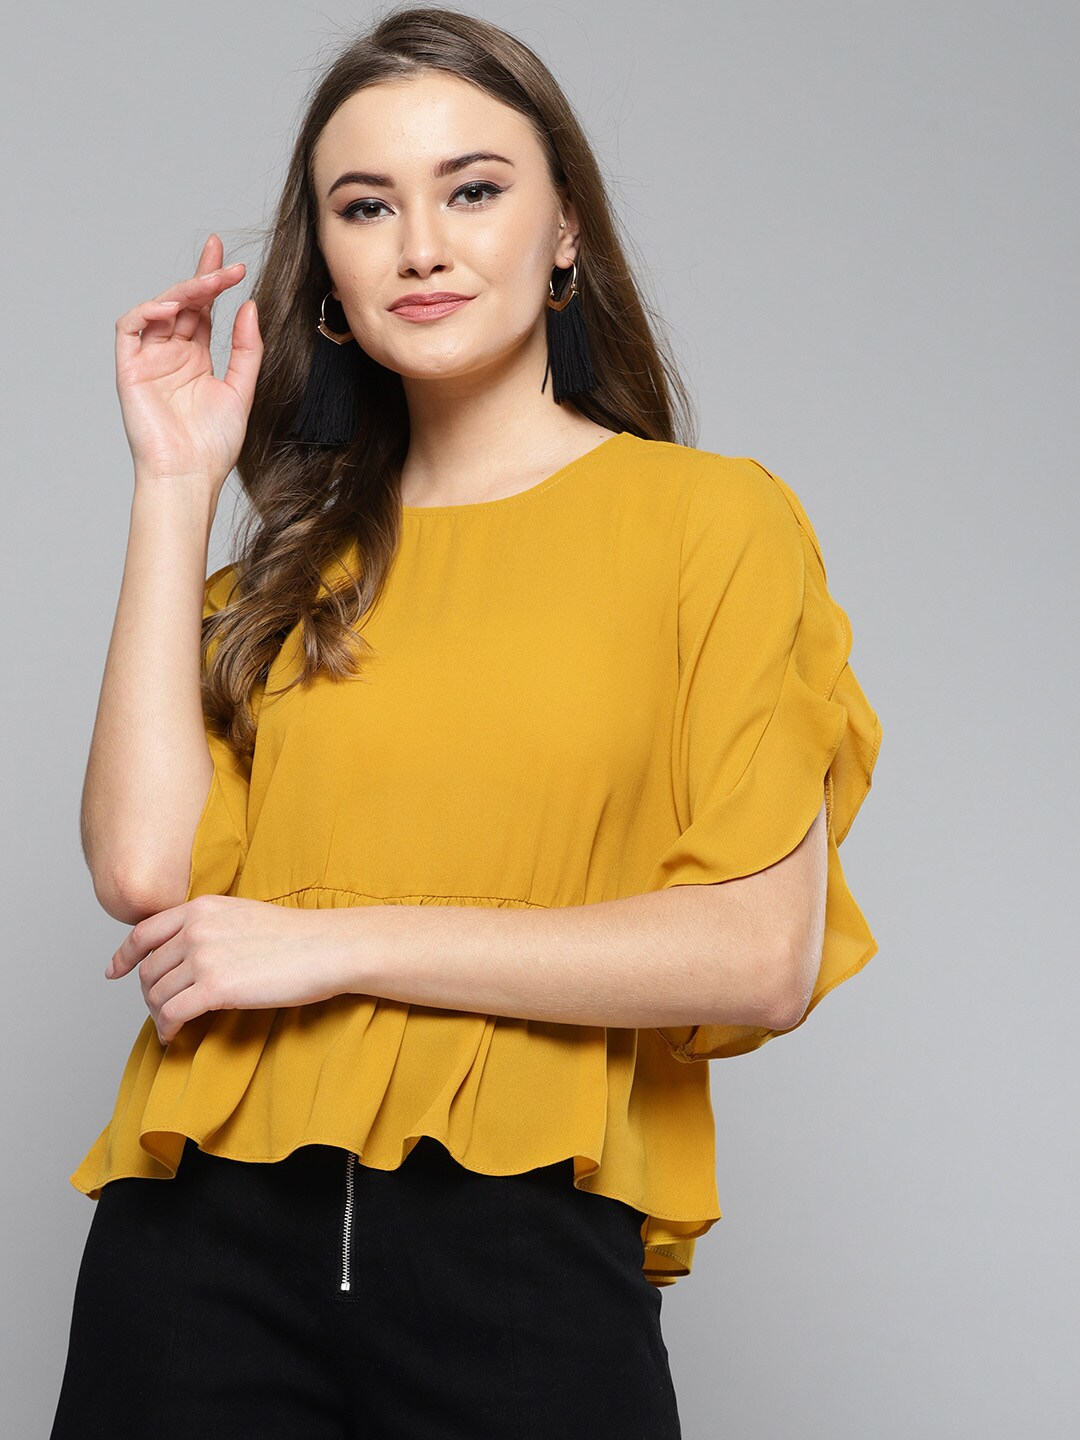 8f900dd0a1f311 Harpa Clothing - Buy Harpa Clothing Online in India